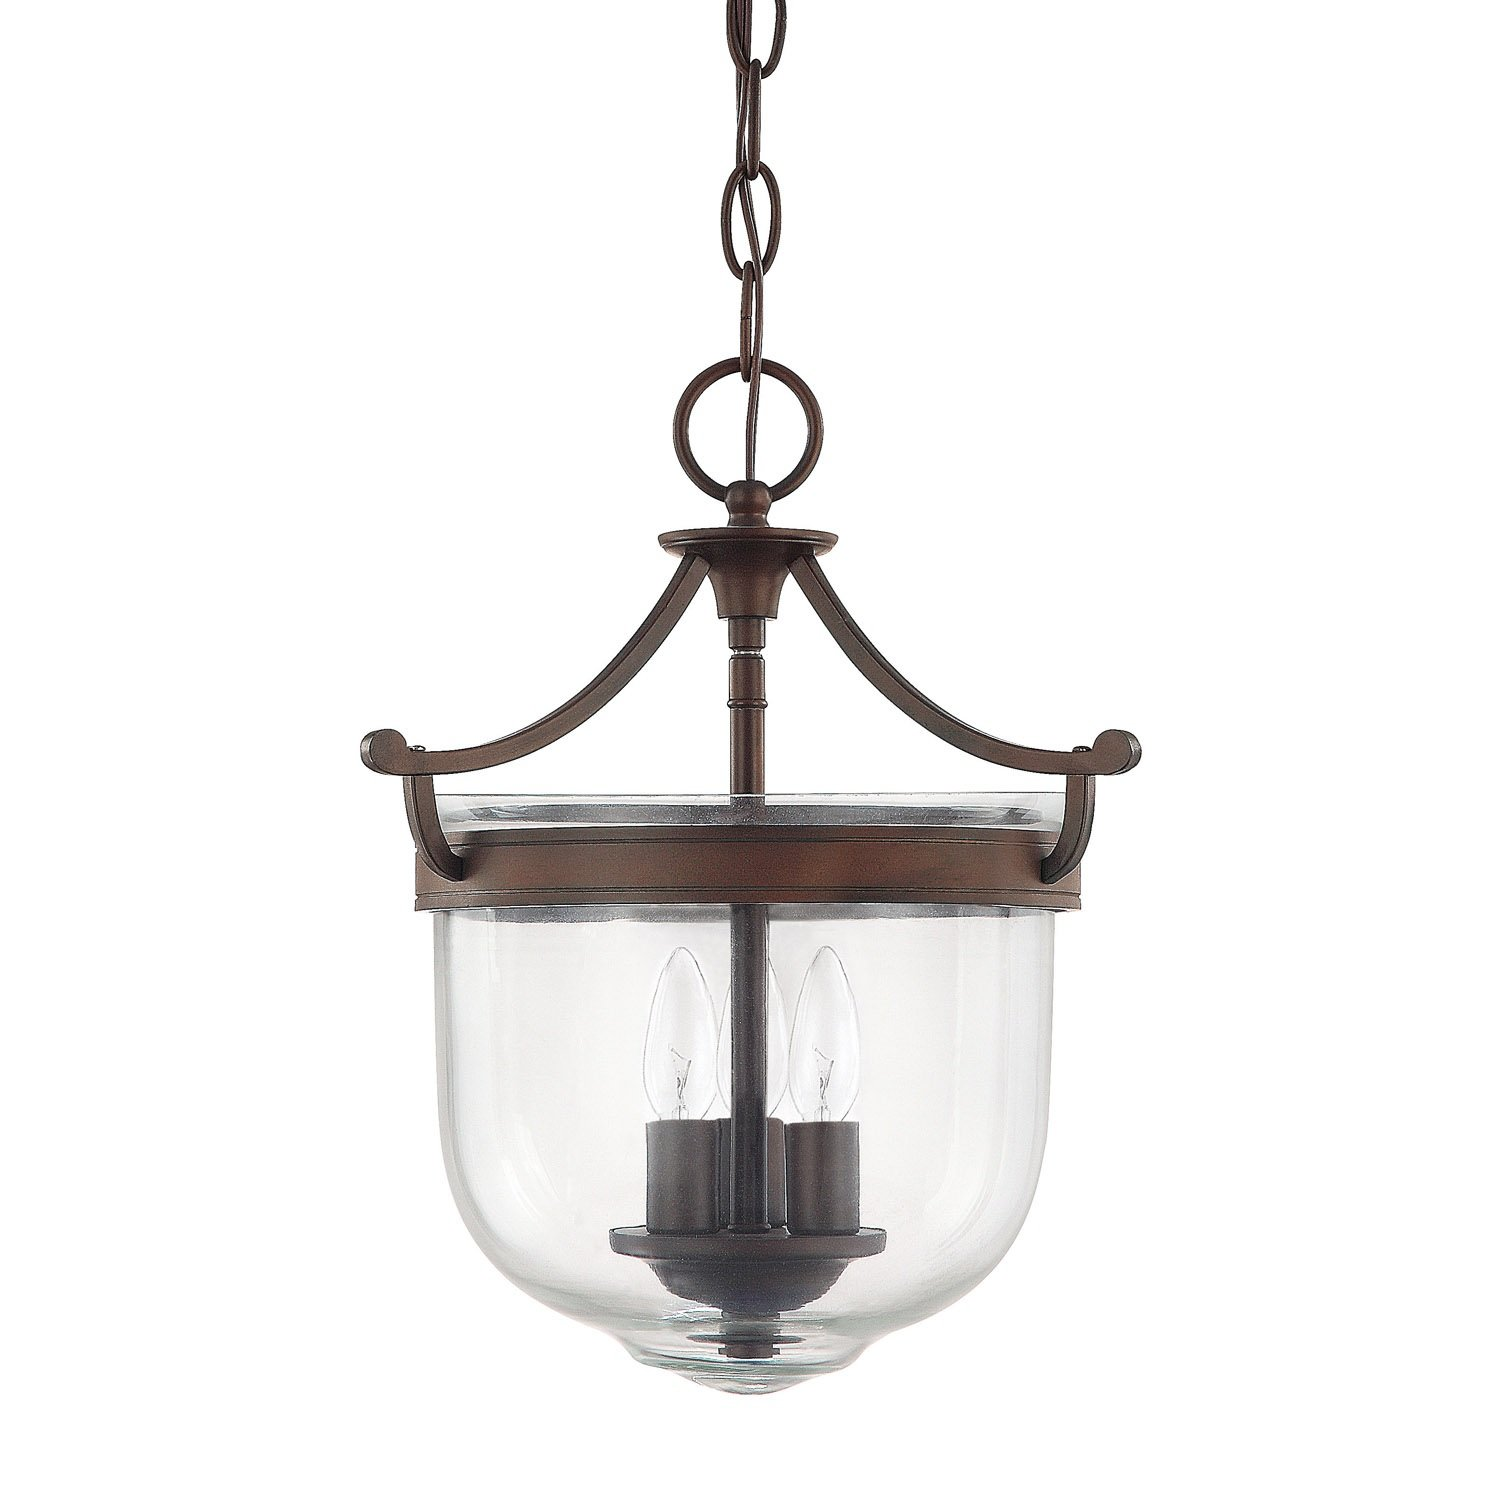 "Capital Lighting 9411BB Covington 3-Light Foyer Fixture With Clear Glass, 11"" x 11"" x 13.5"", Burnished Bronze Finish"